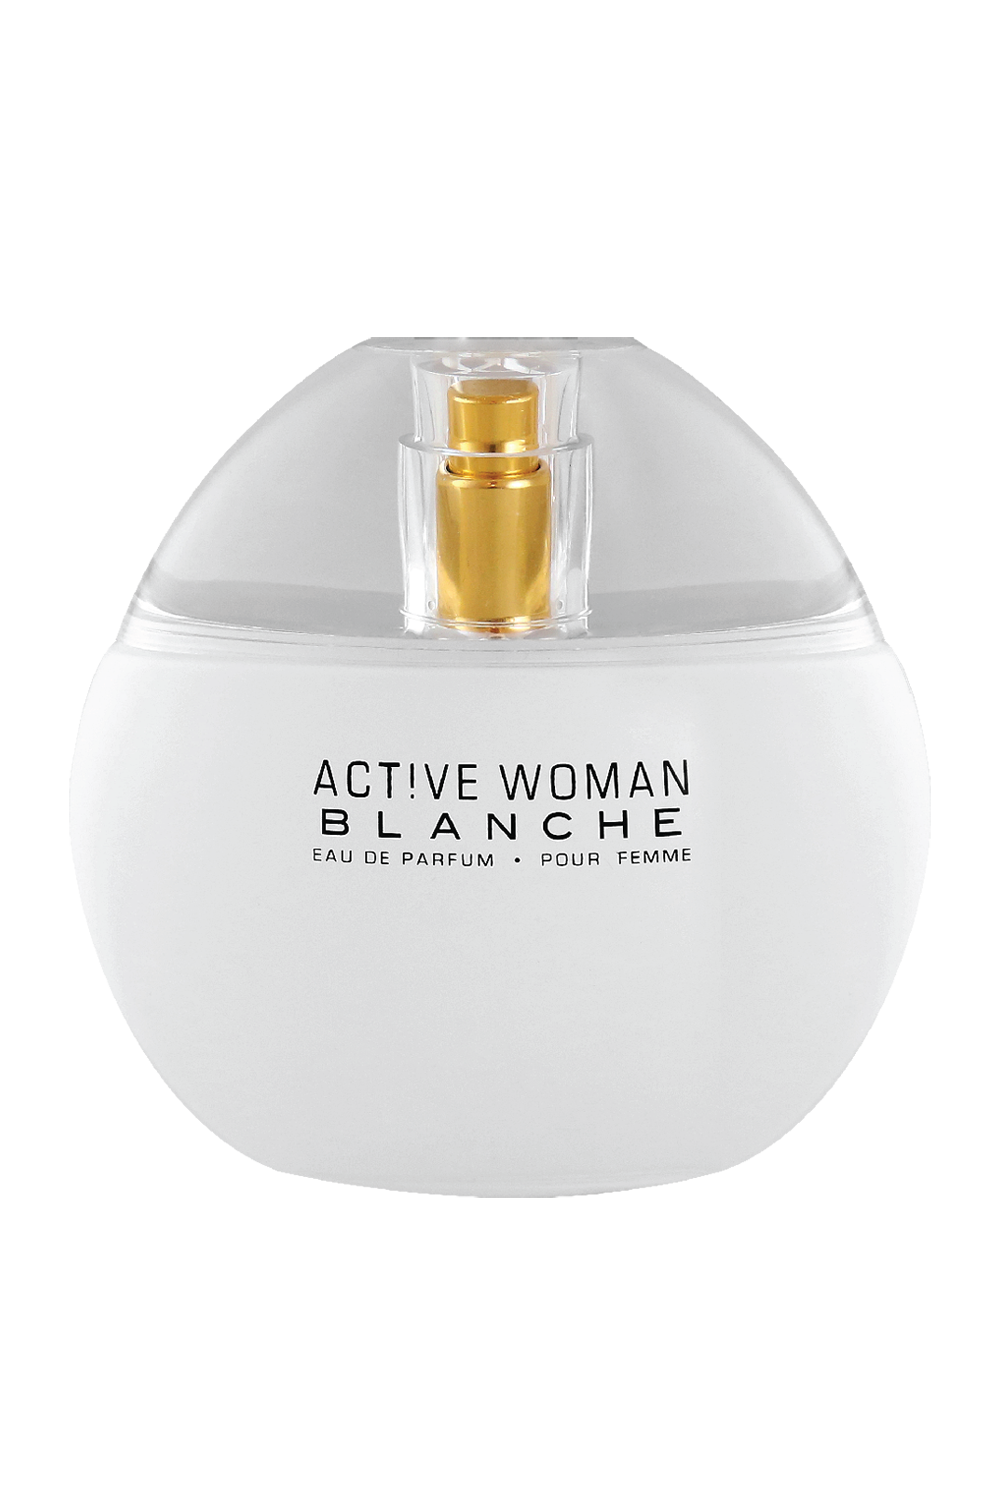 ACTIVE WOMAN BLANCHE